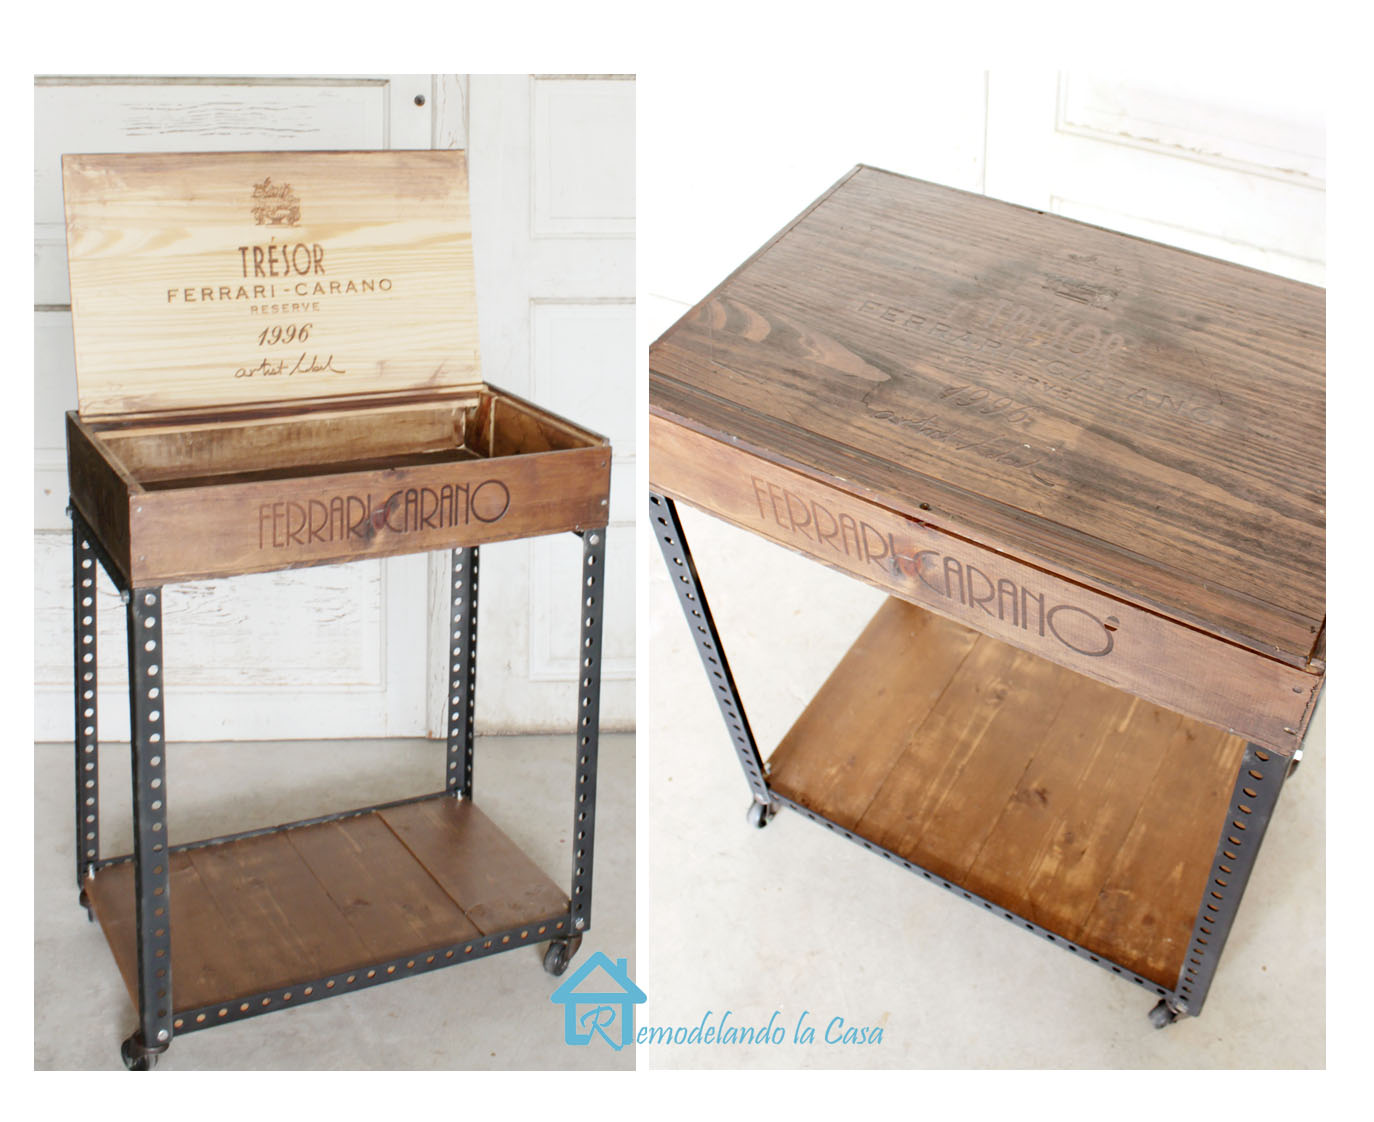 Diy industrial side table remodelando la casa What to do with wine crates